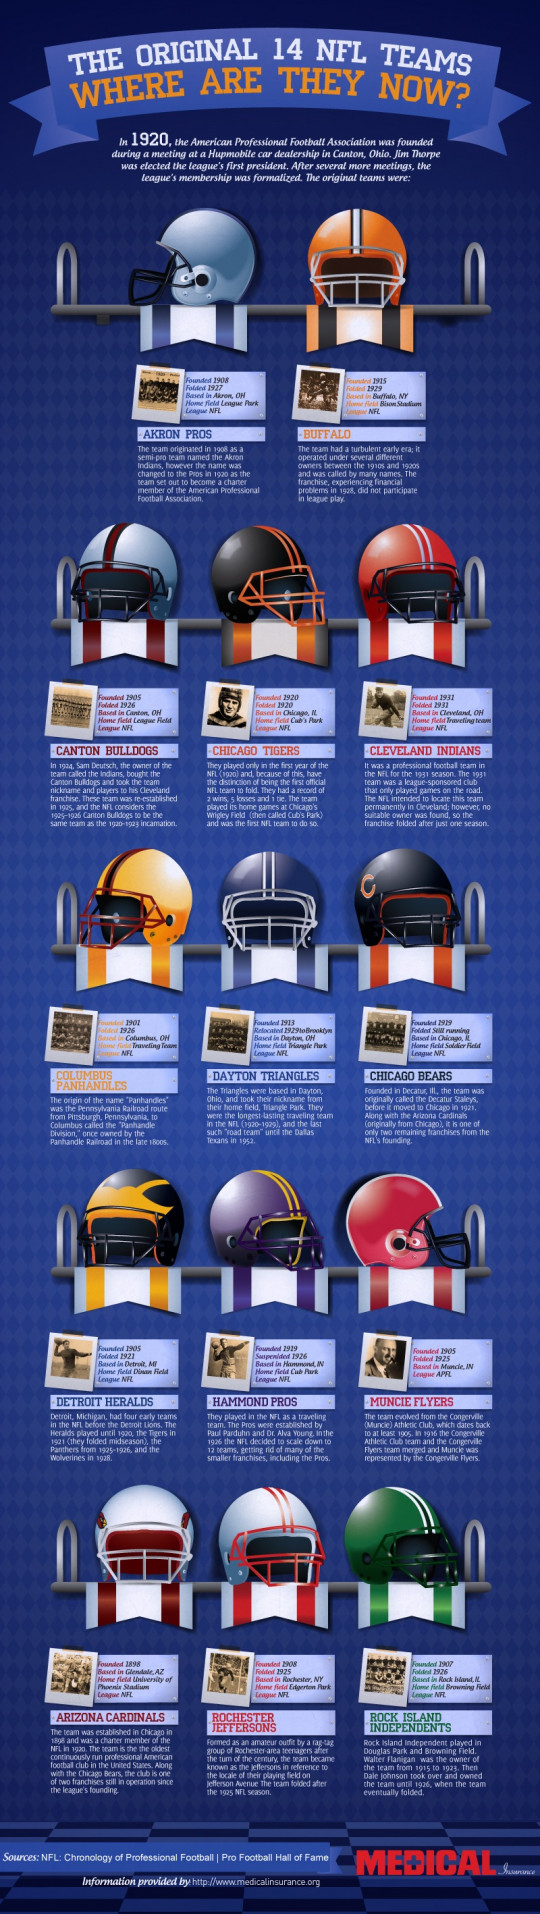 The Original 14 NFL Teams